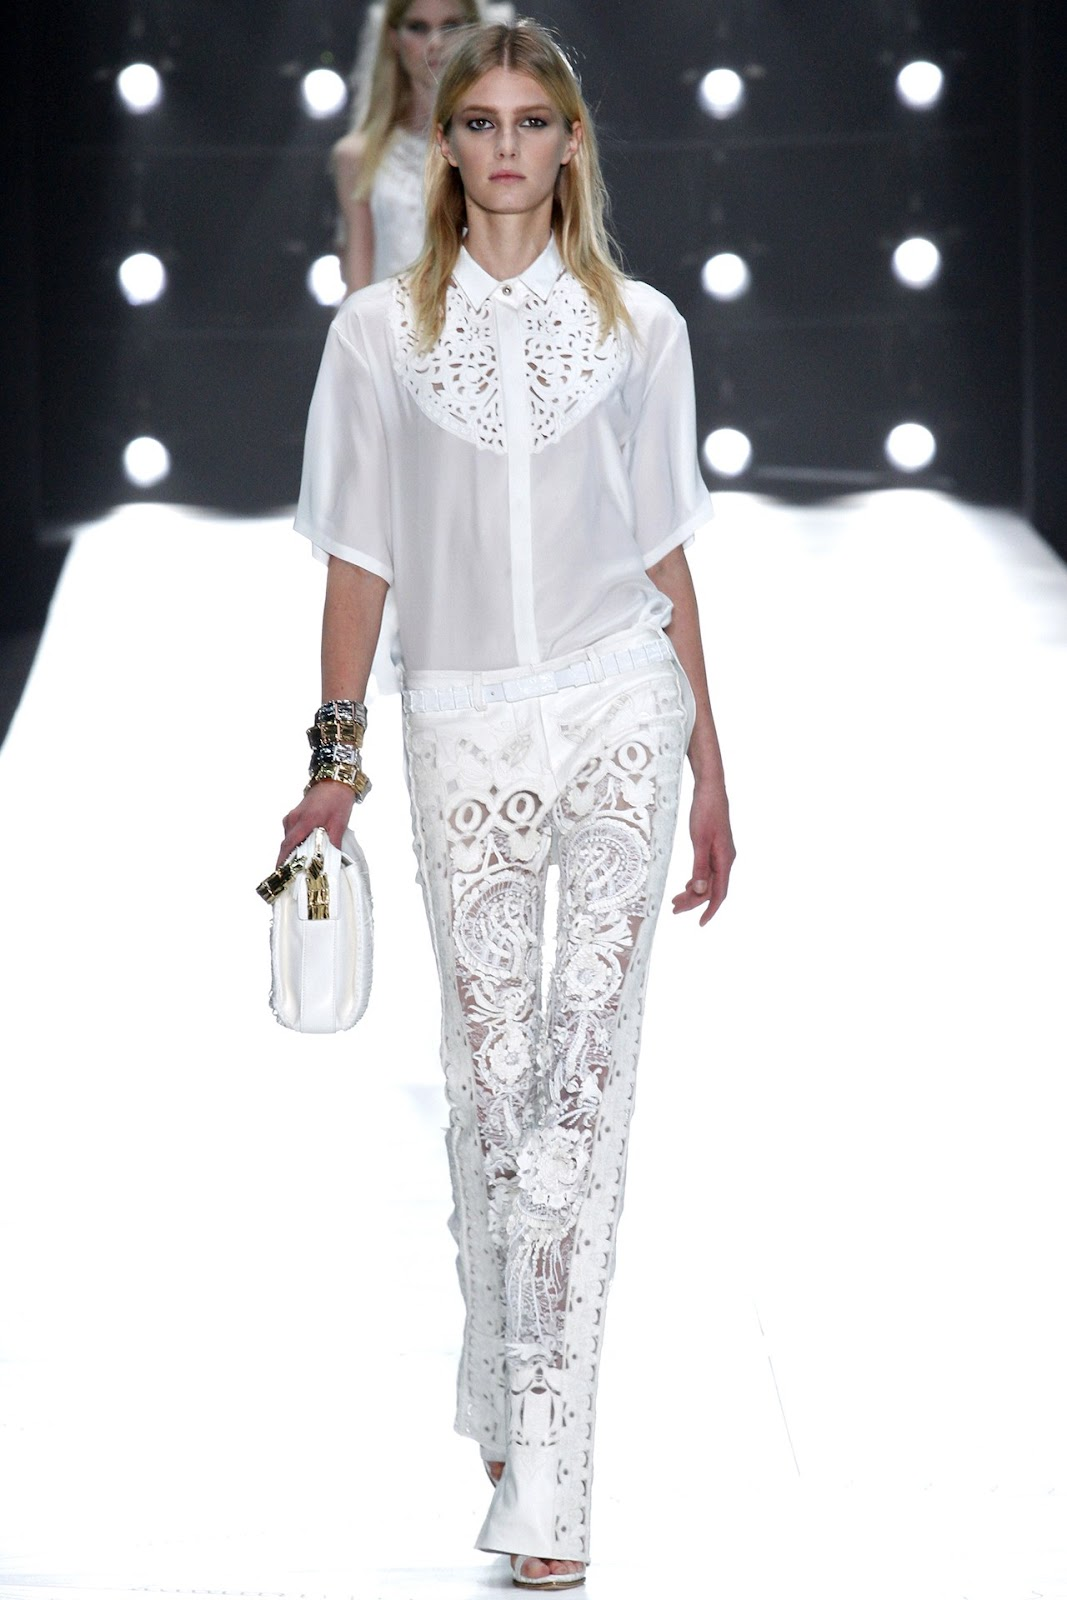 Roberto Cavalli Spring 2013 Milan Fashion Week